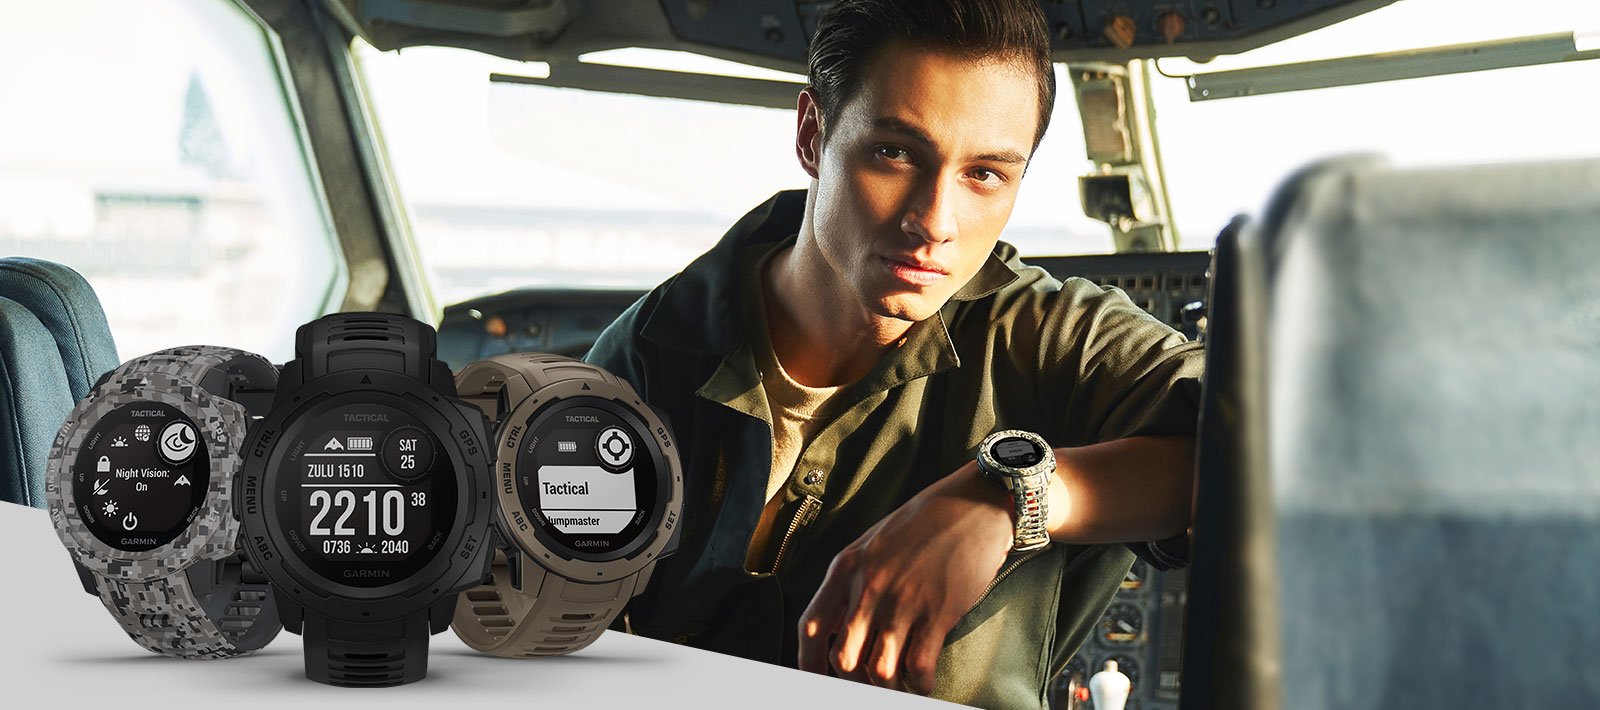 Instinct Series - Tactical edition , outdoor gps watch Monitor